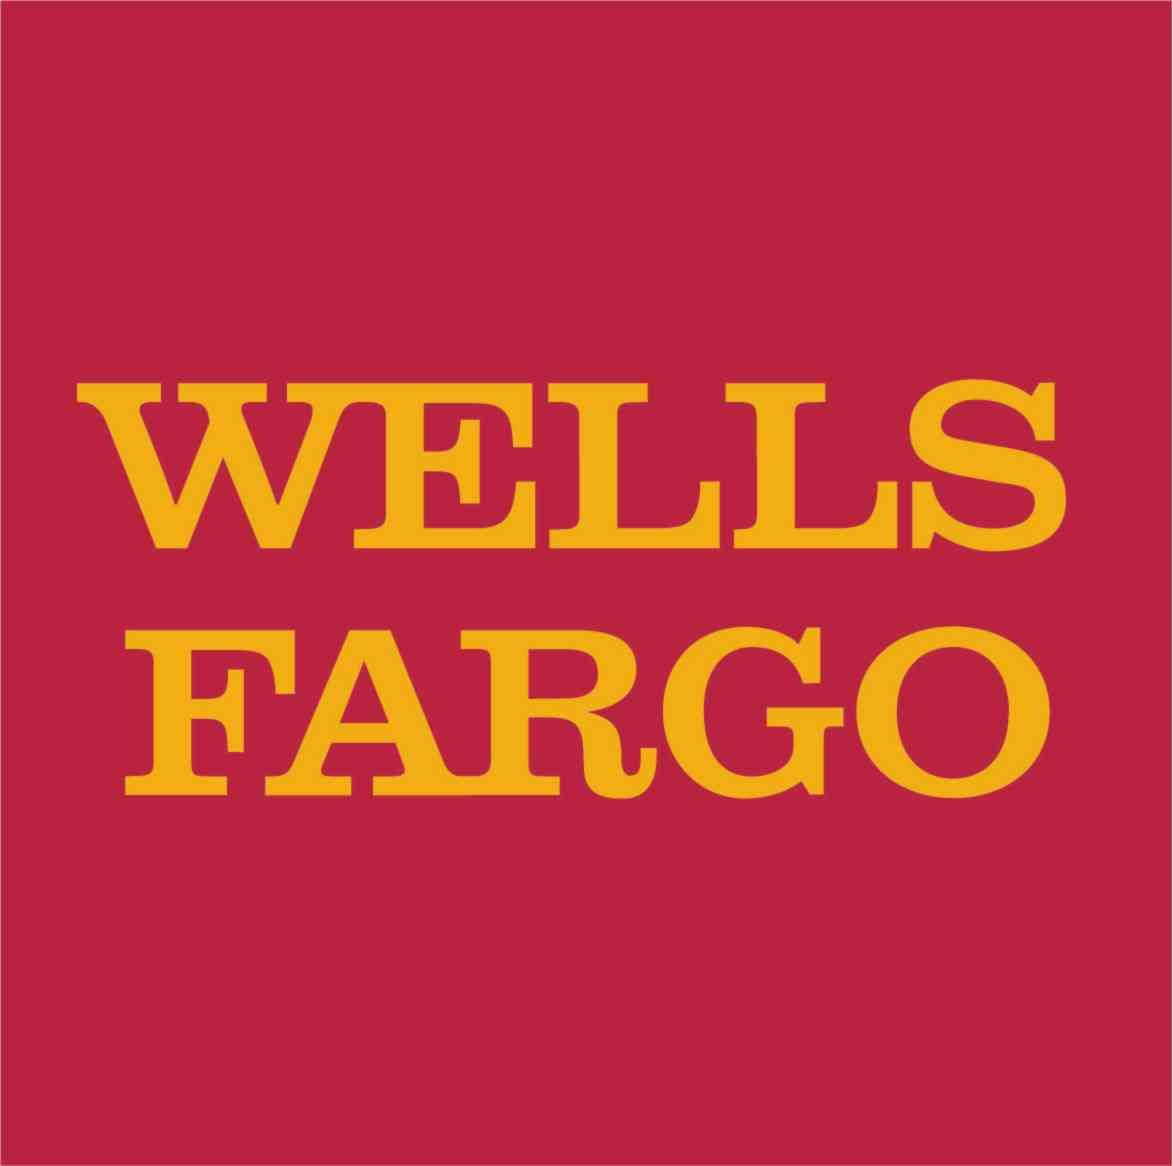 Wells Fargo Proposes 30 Down Payment With Images Wells Fargo Mortgage Wells Fargo Logo Wells Fargo